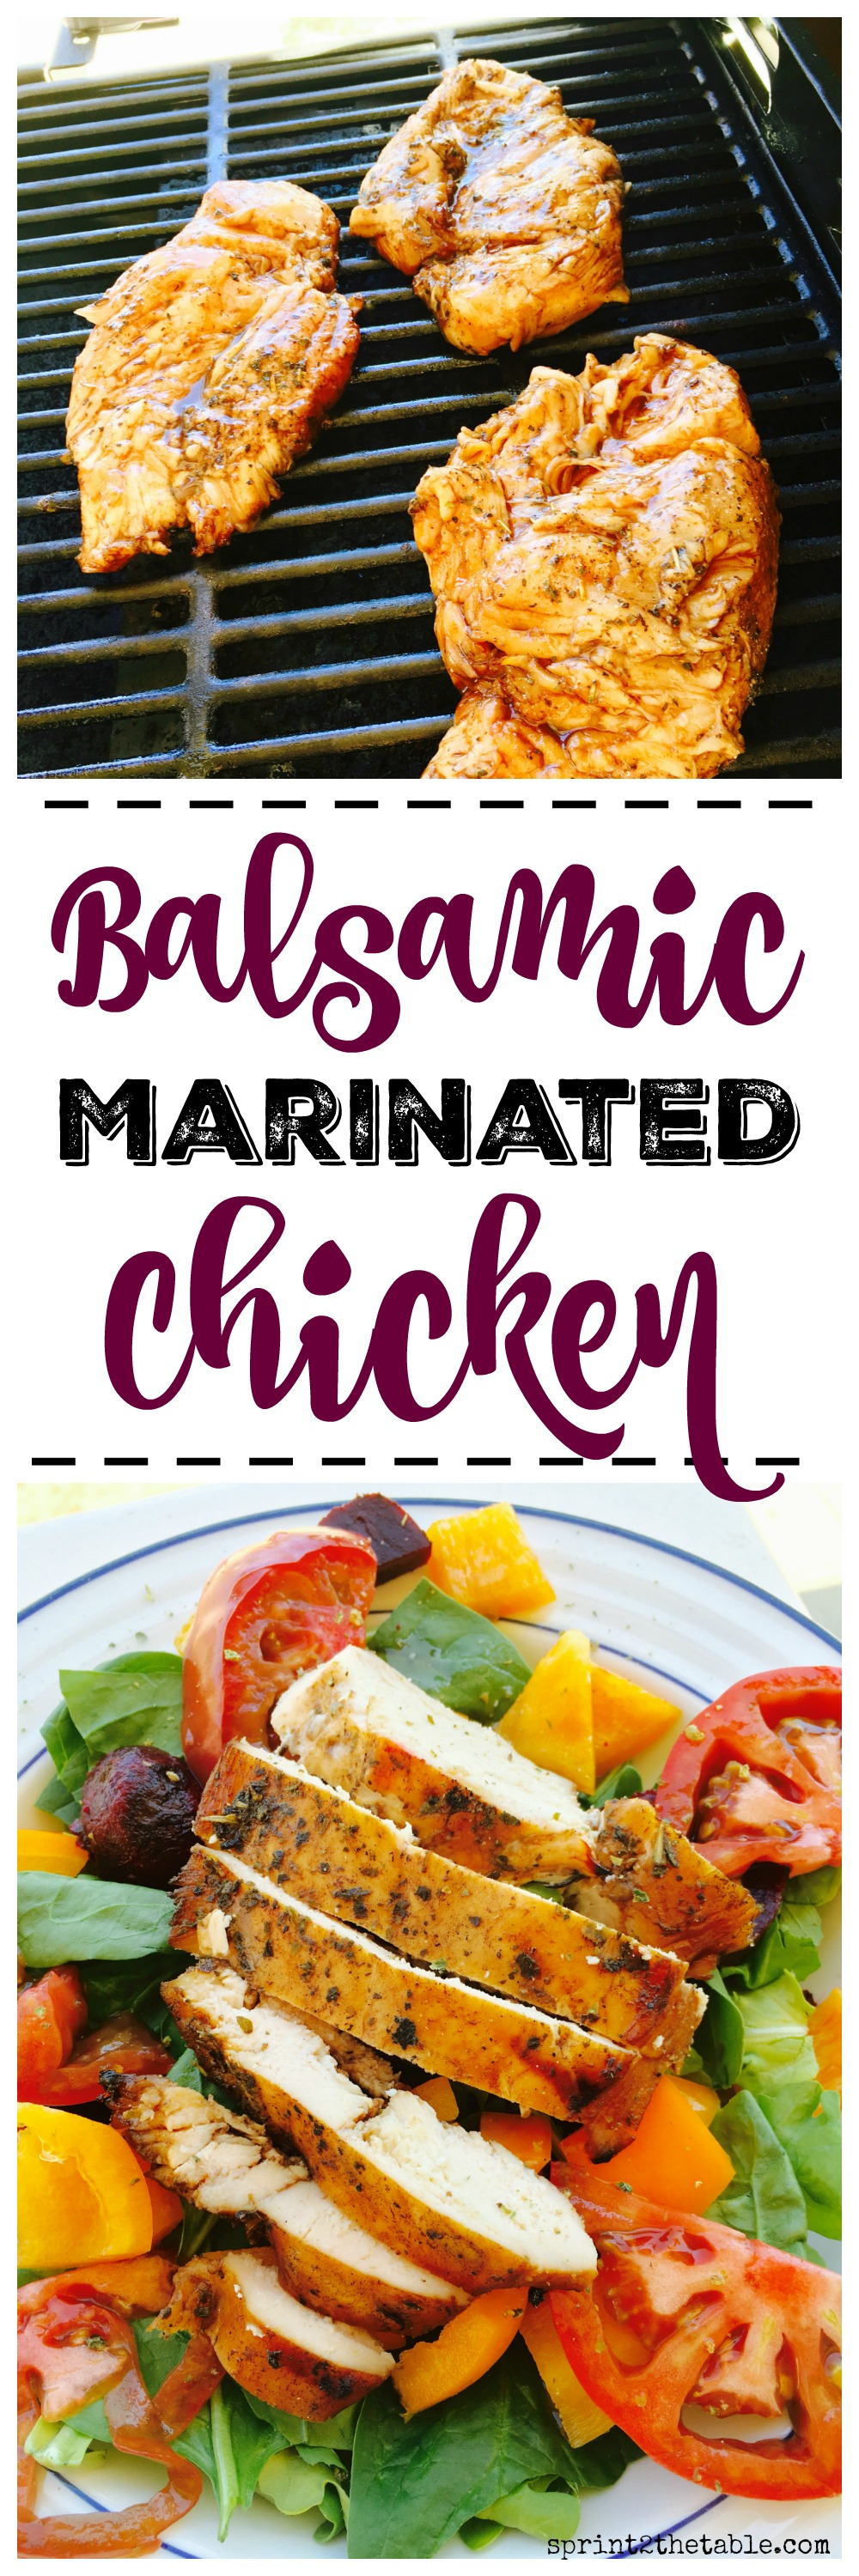 This Balsamic Marinated Chicken recipe is incredibly easy to make and packs a ton of flavor your whole family will love!